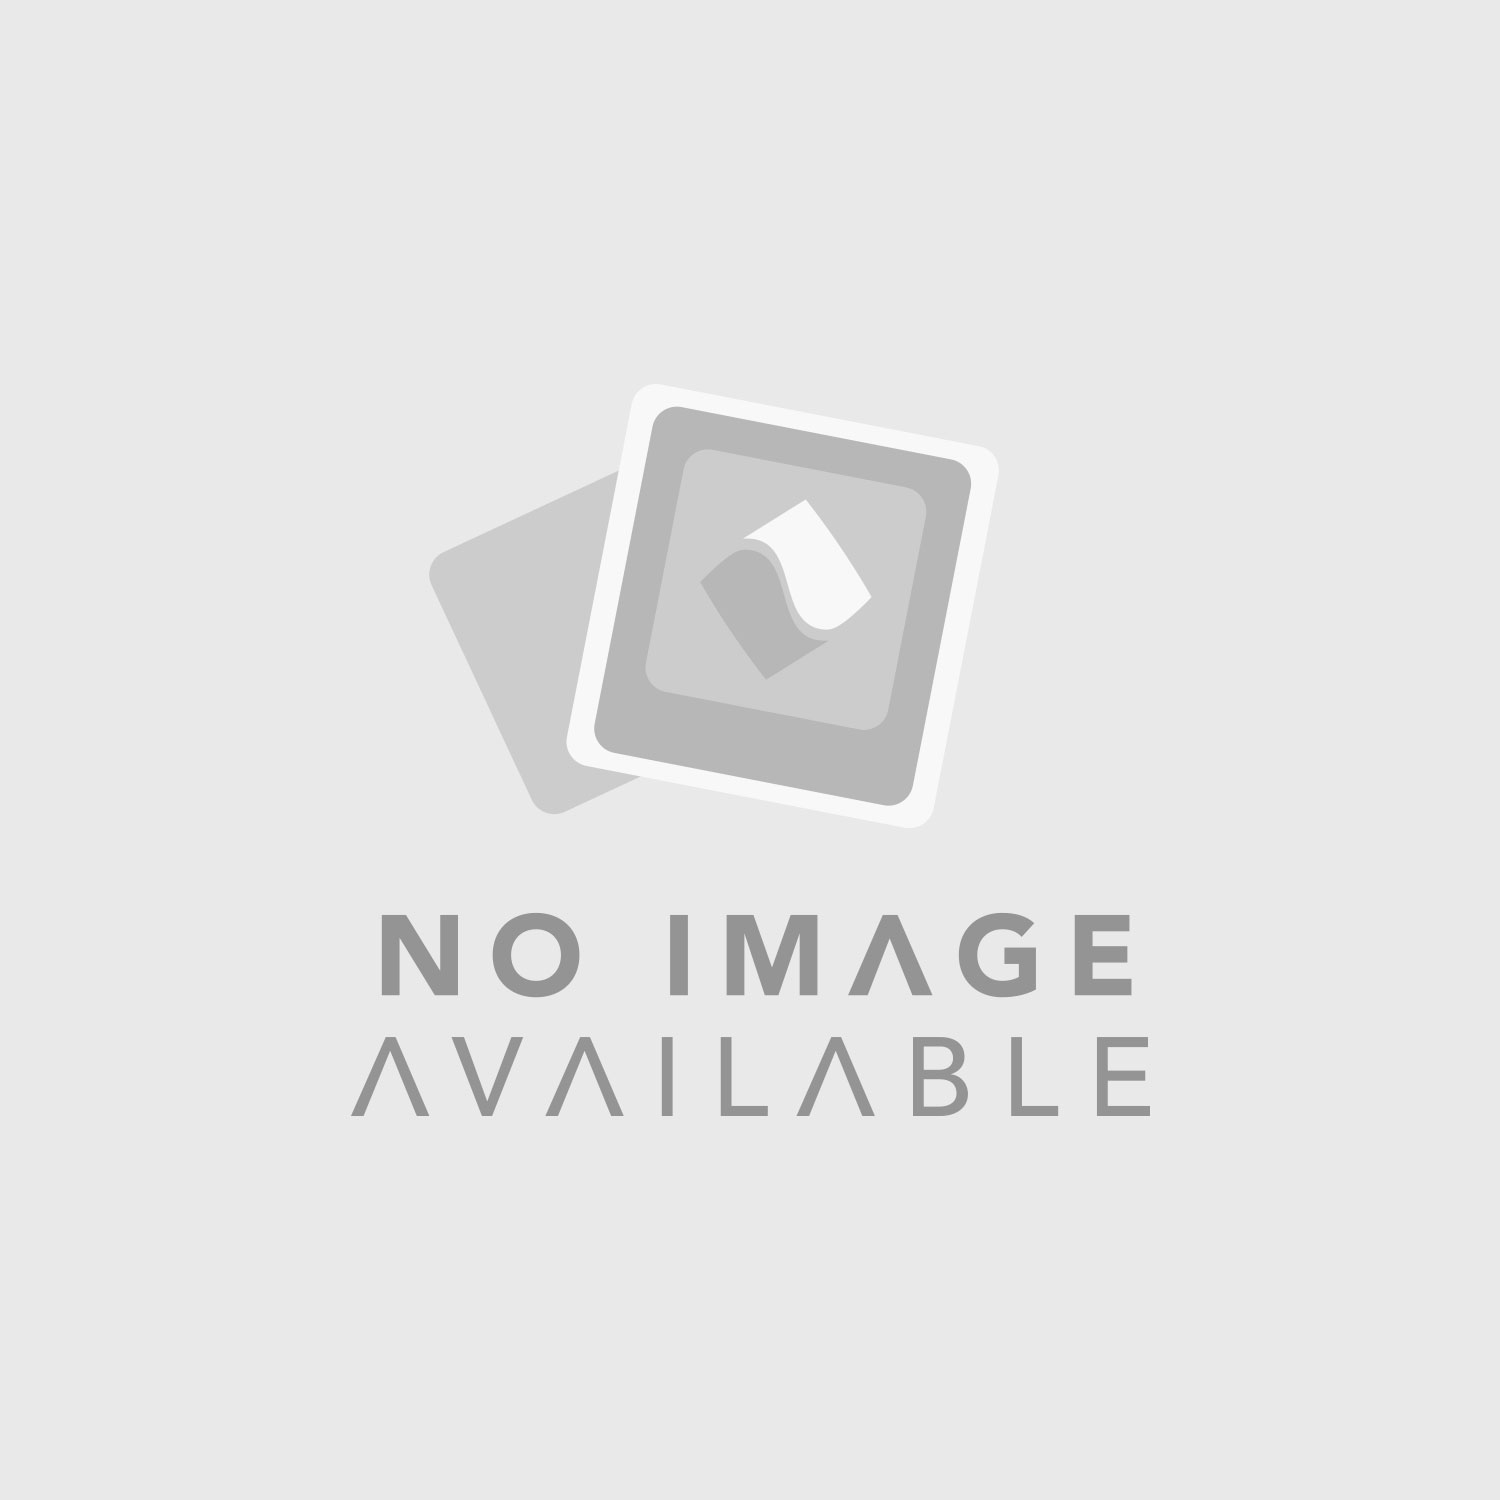 CAD Astatic 40-348 Dual 3-Pin XLR Female Wall Plate